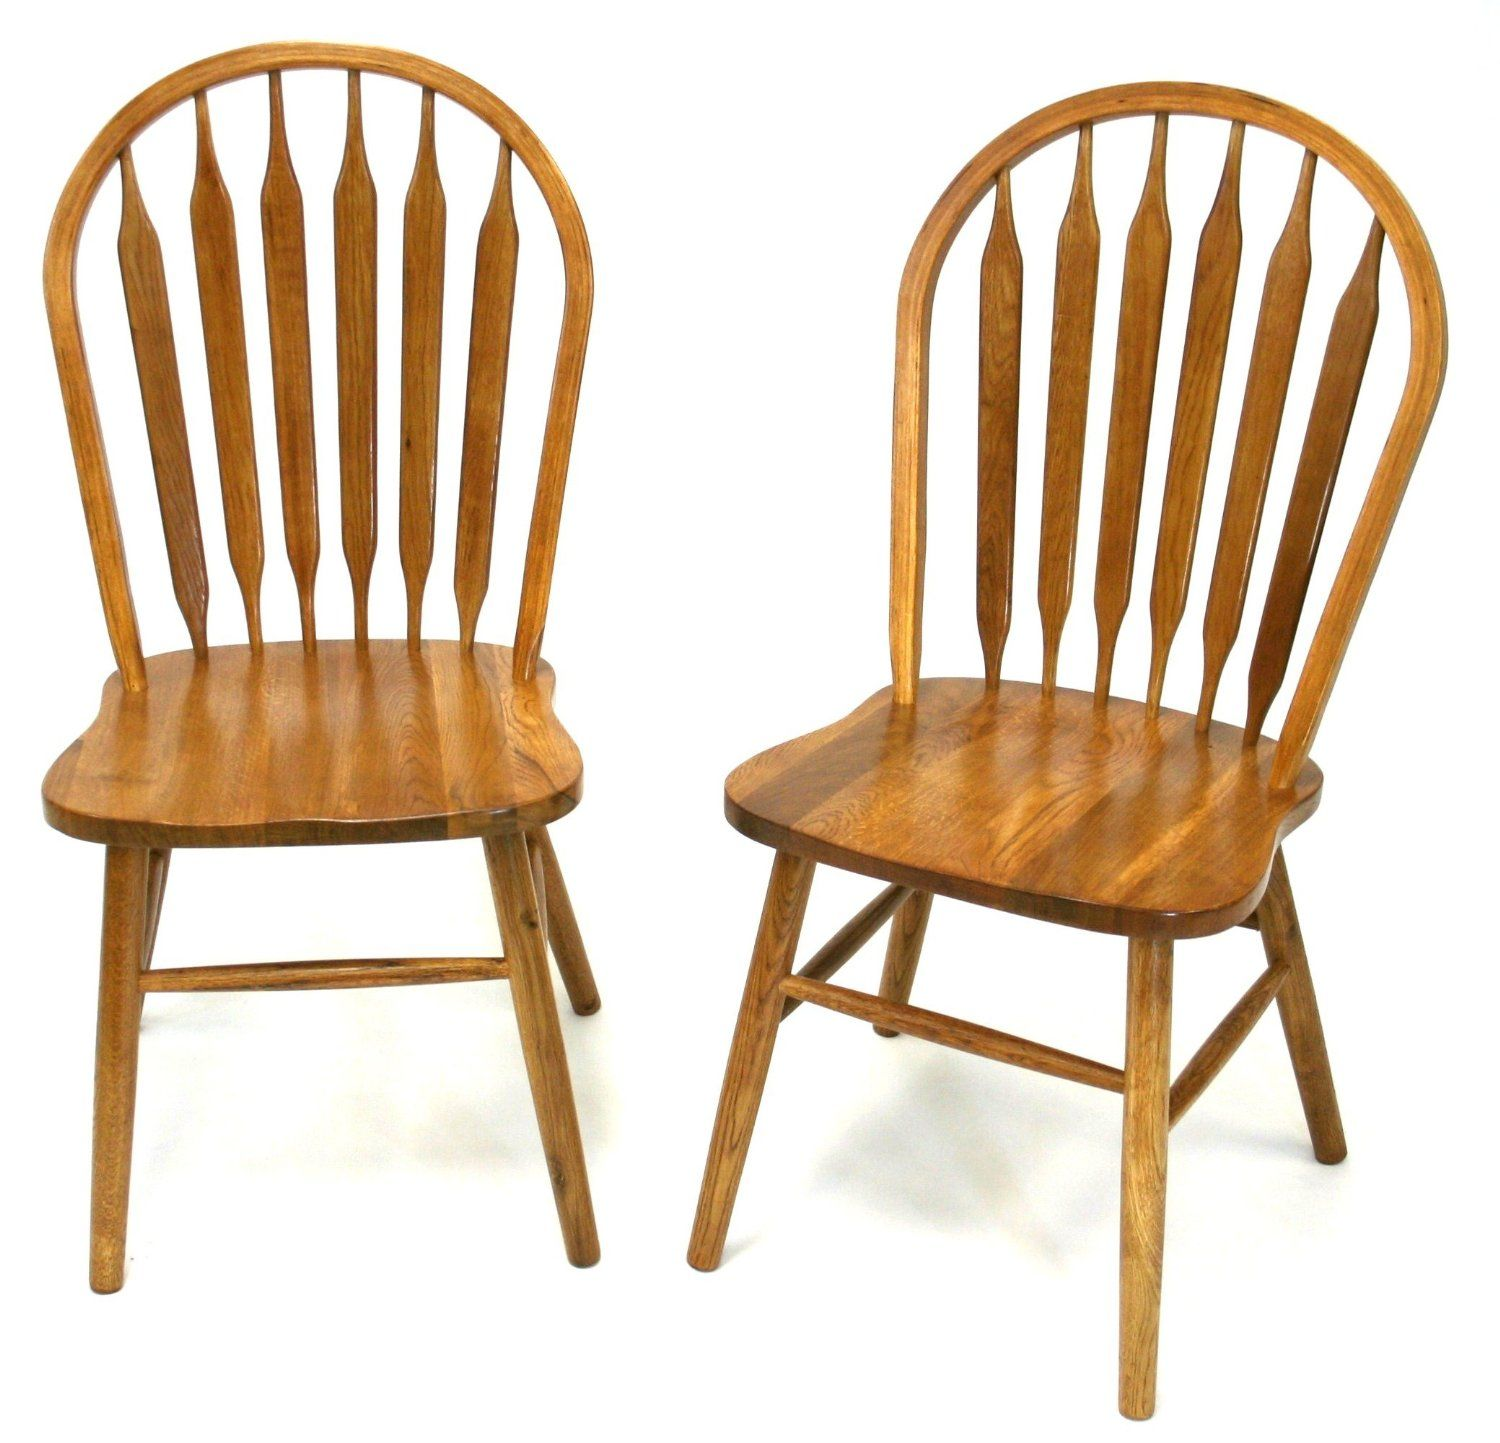 Solid Oak Windsor Chairs Arrow Back Wooden Kitchen Chairs